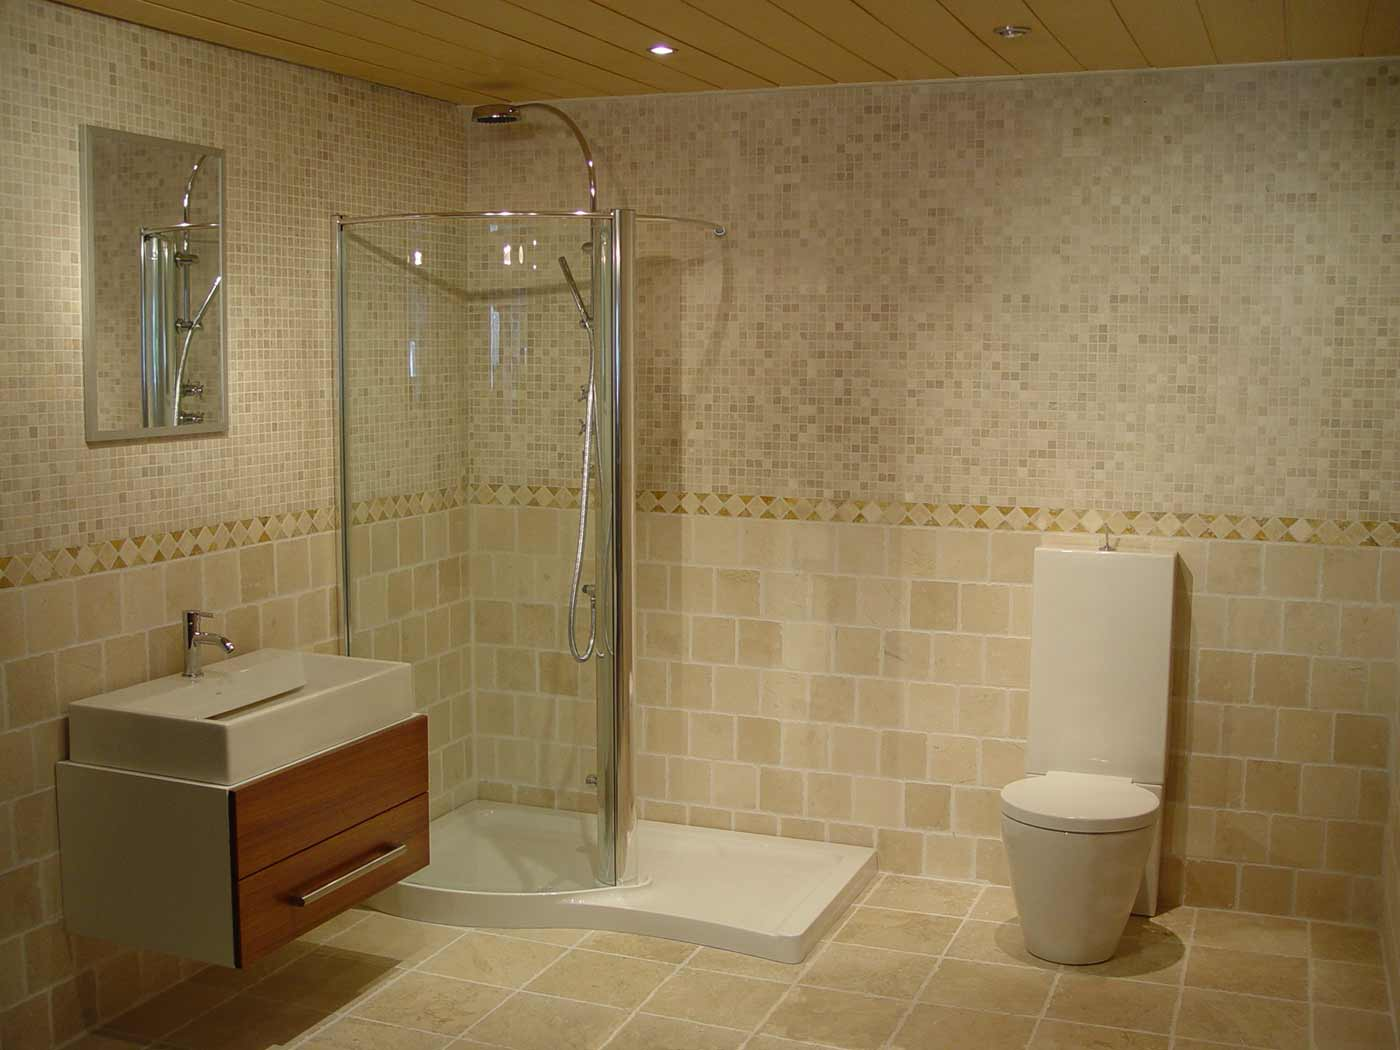 Best Tile for Bathroom Ideas